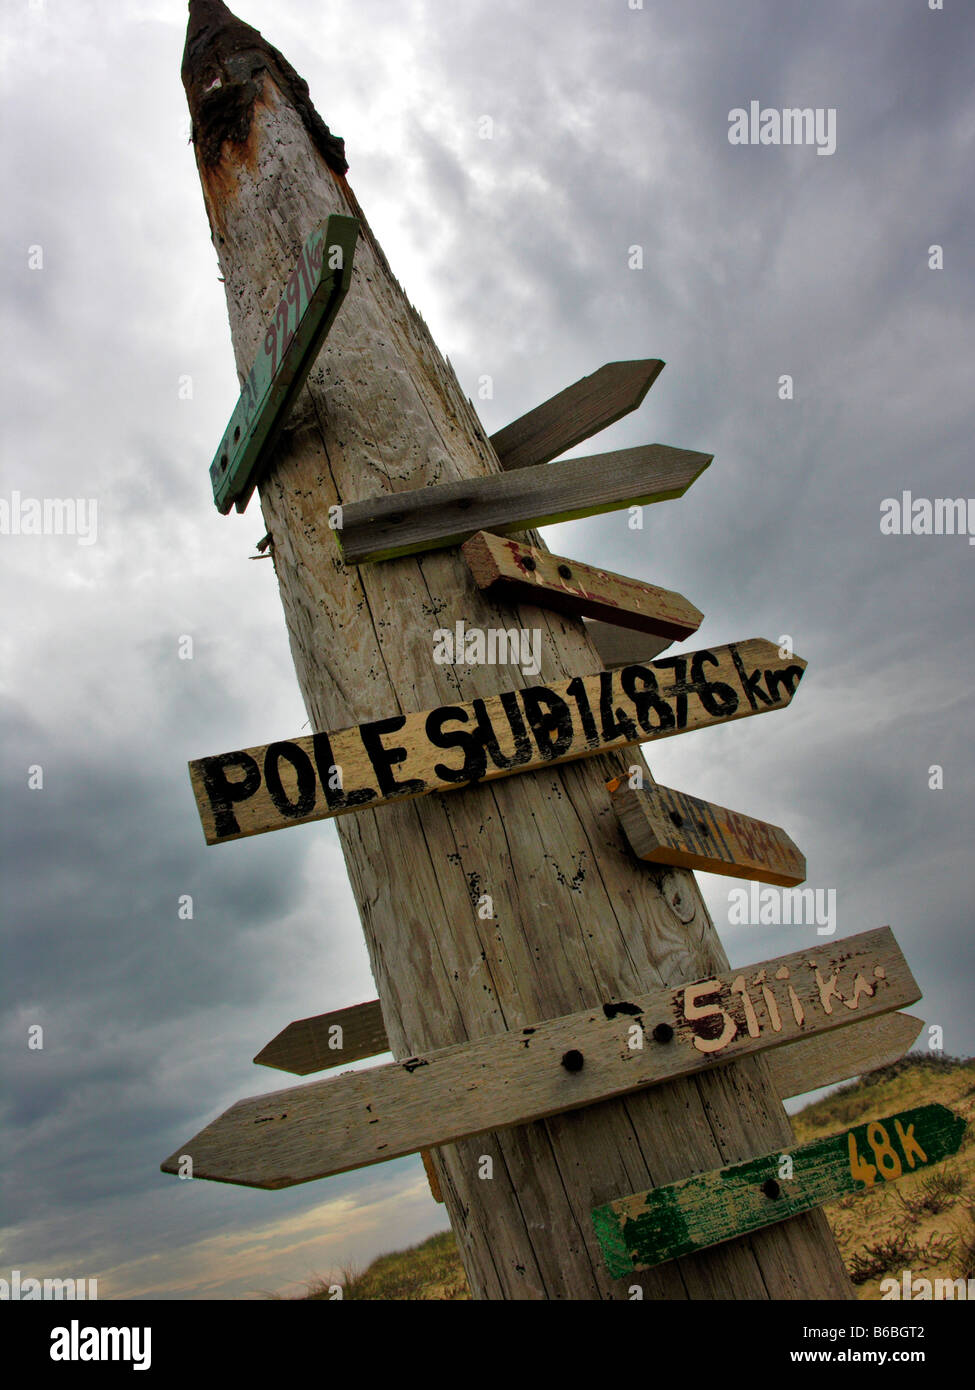 Signboards mounted on wooden pole - Stock Image